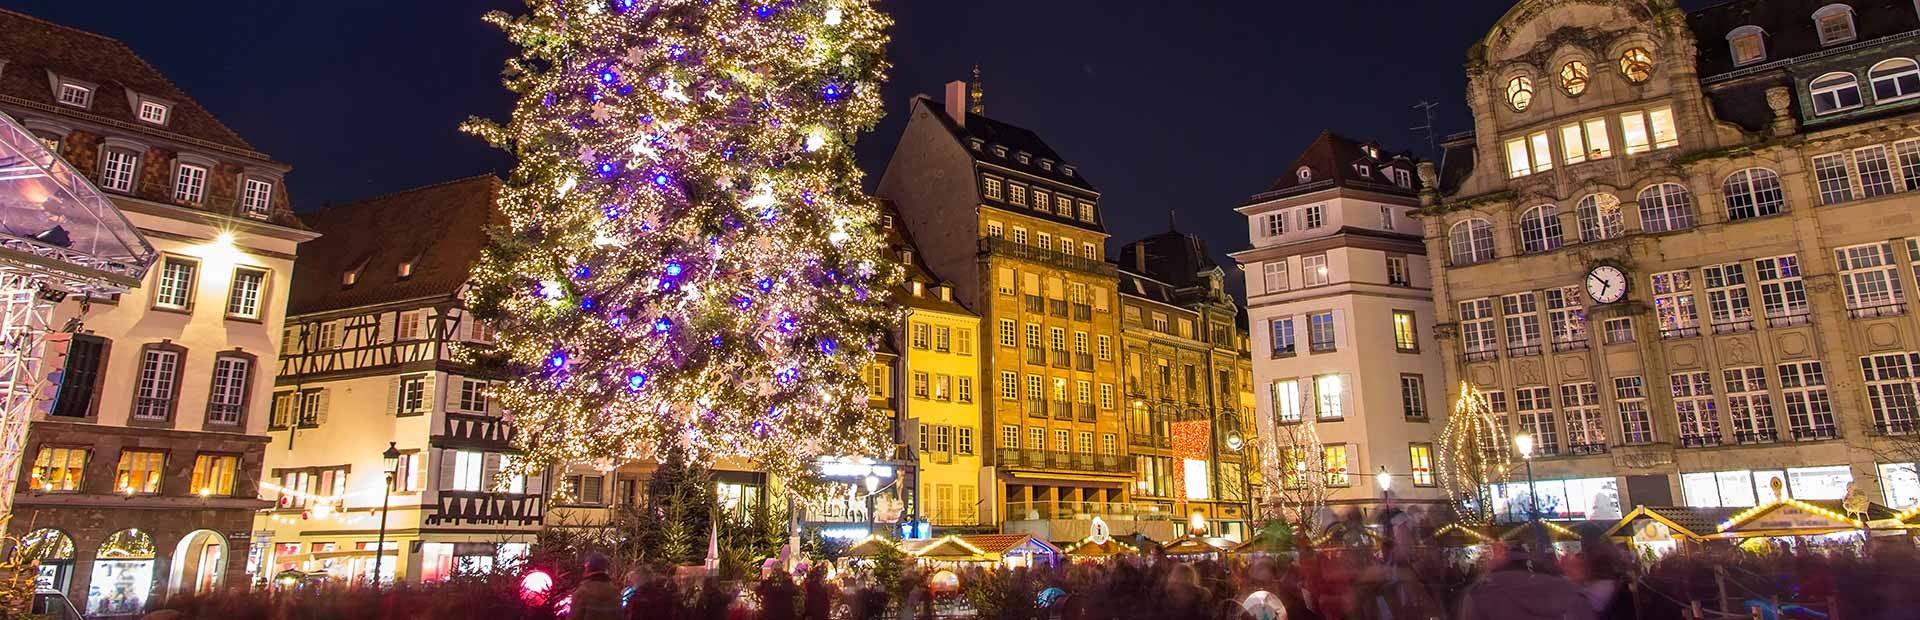 Any Cruise Deals For Christmas 2020 2020 & 2021 Festive River Cruises | RiverVoyages.com